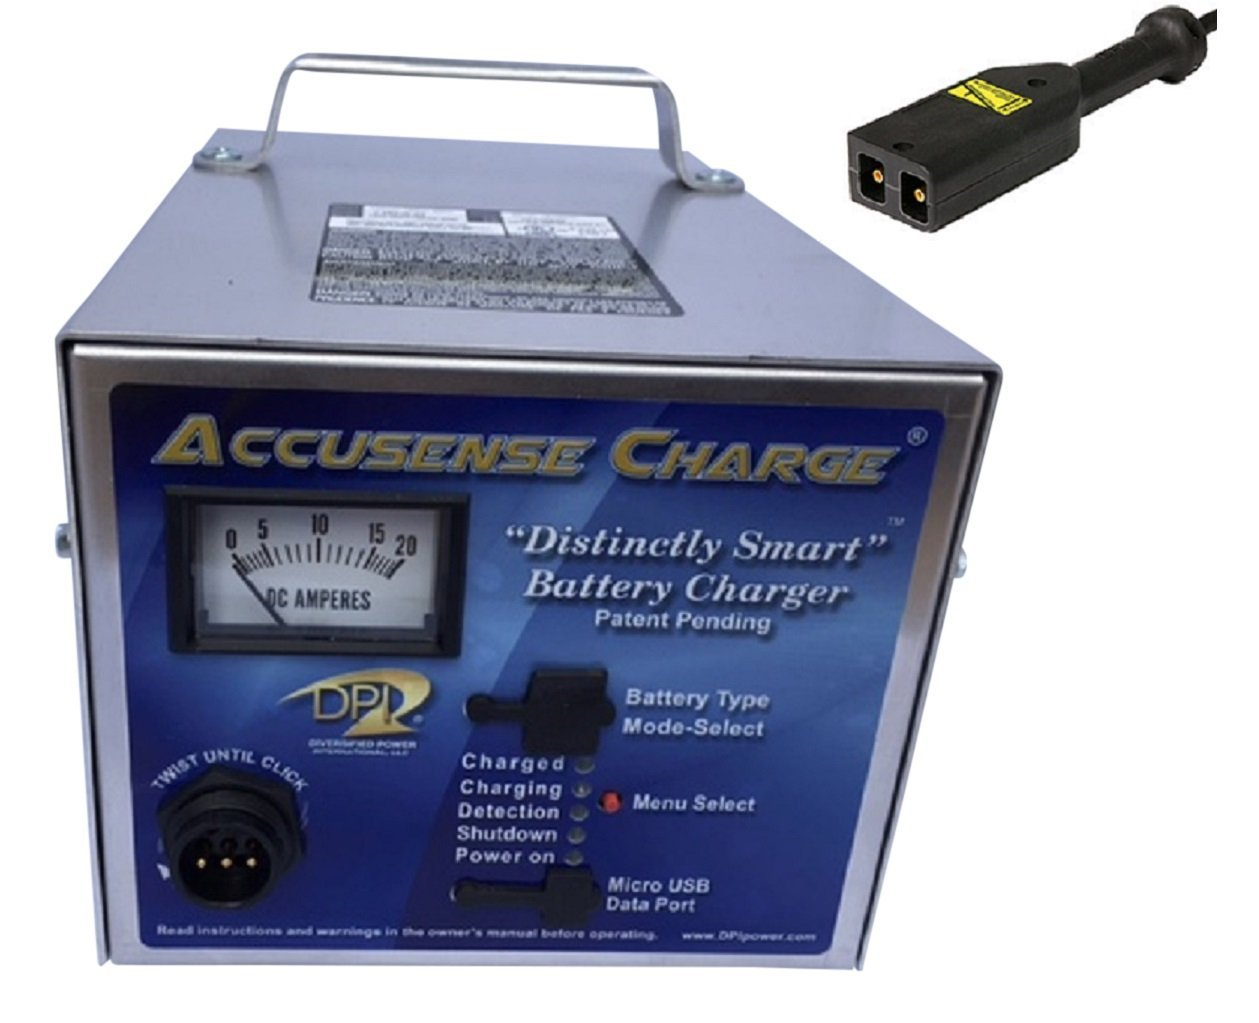 Accusense 36volt 18amp Golf Cart Battery Charger for Ez-go